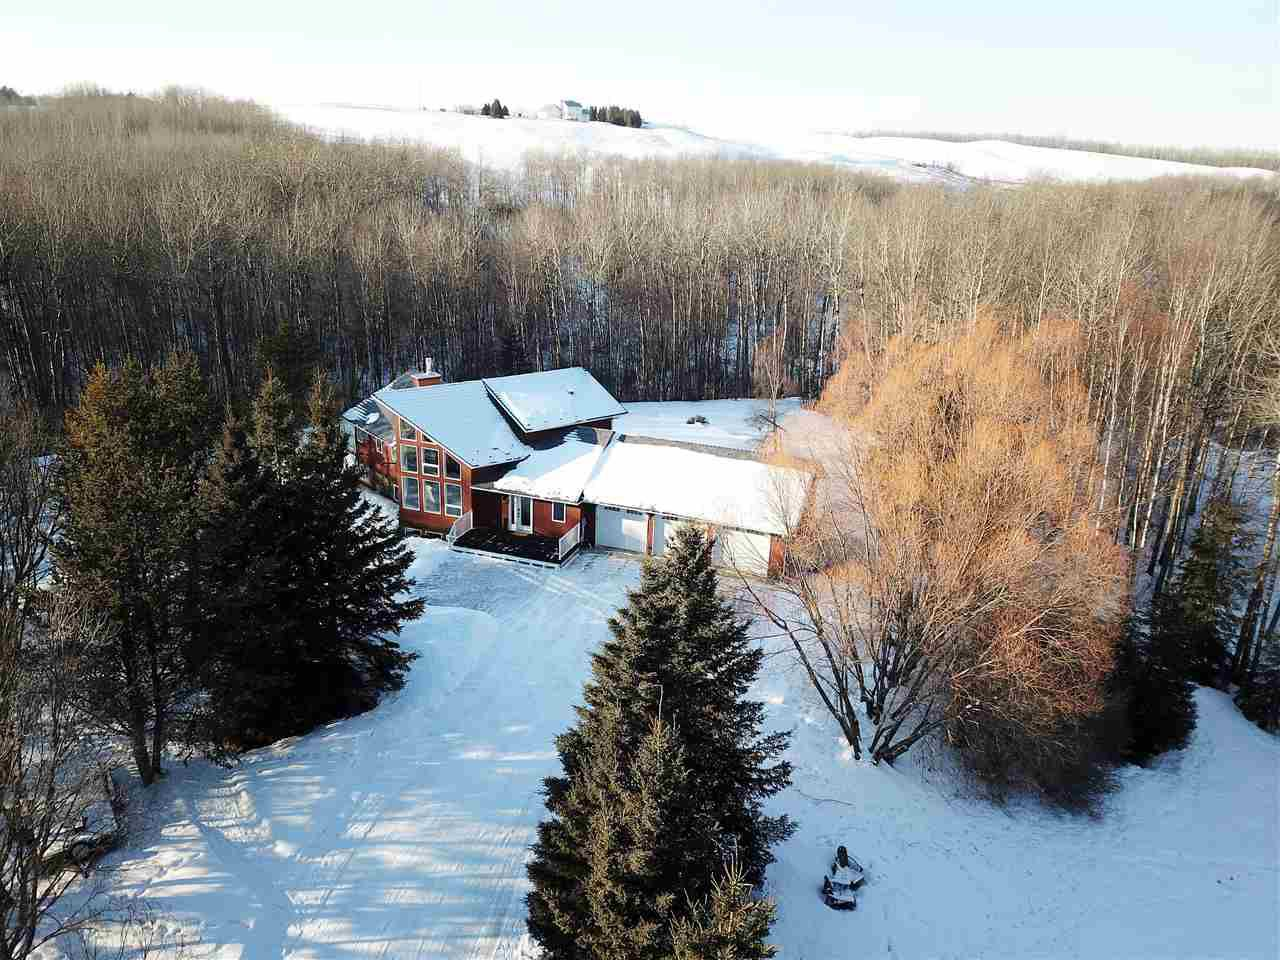 Main Photo: 33 53424 RGE RD 13: Rural Parkland County House for sale : MLS®# E4142826